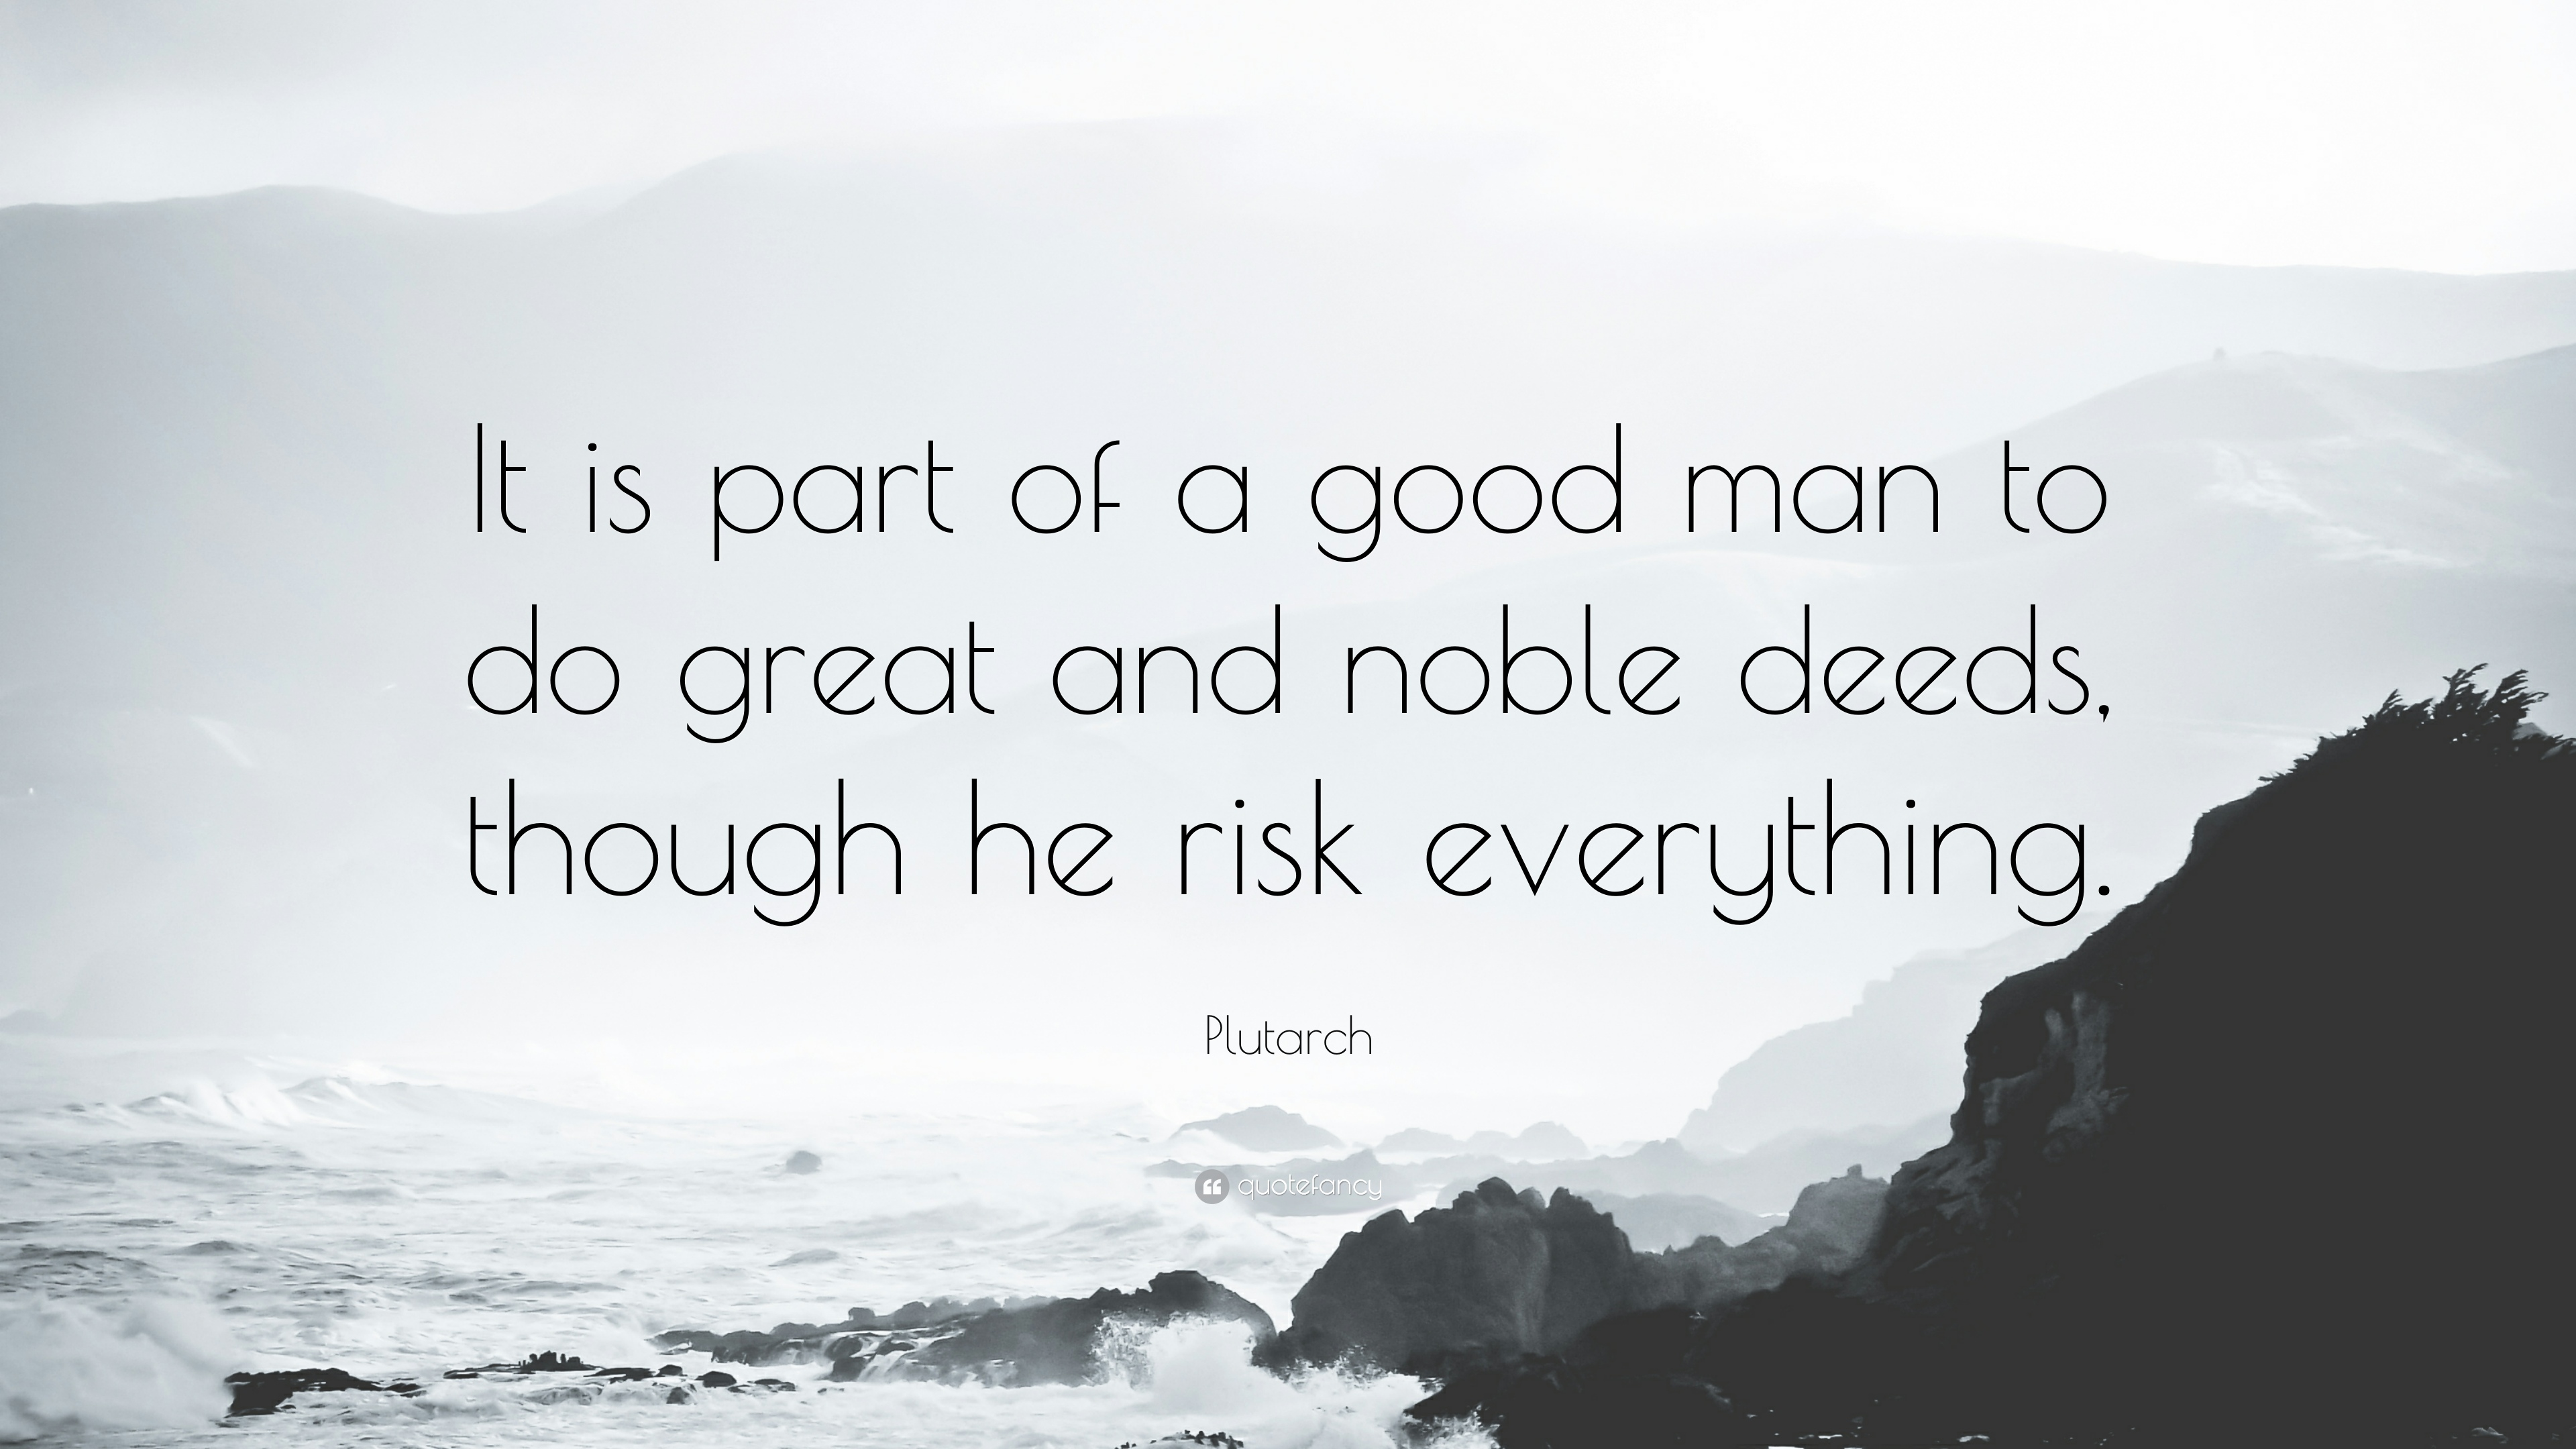 Plutarch Quote It Is Part Of A Good Man To Do Great And Noble